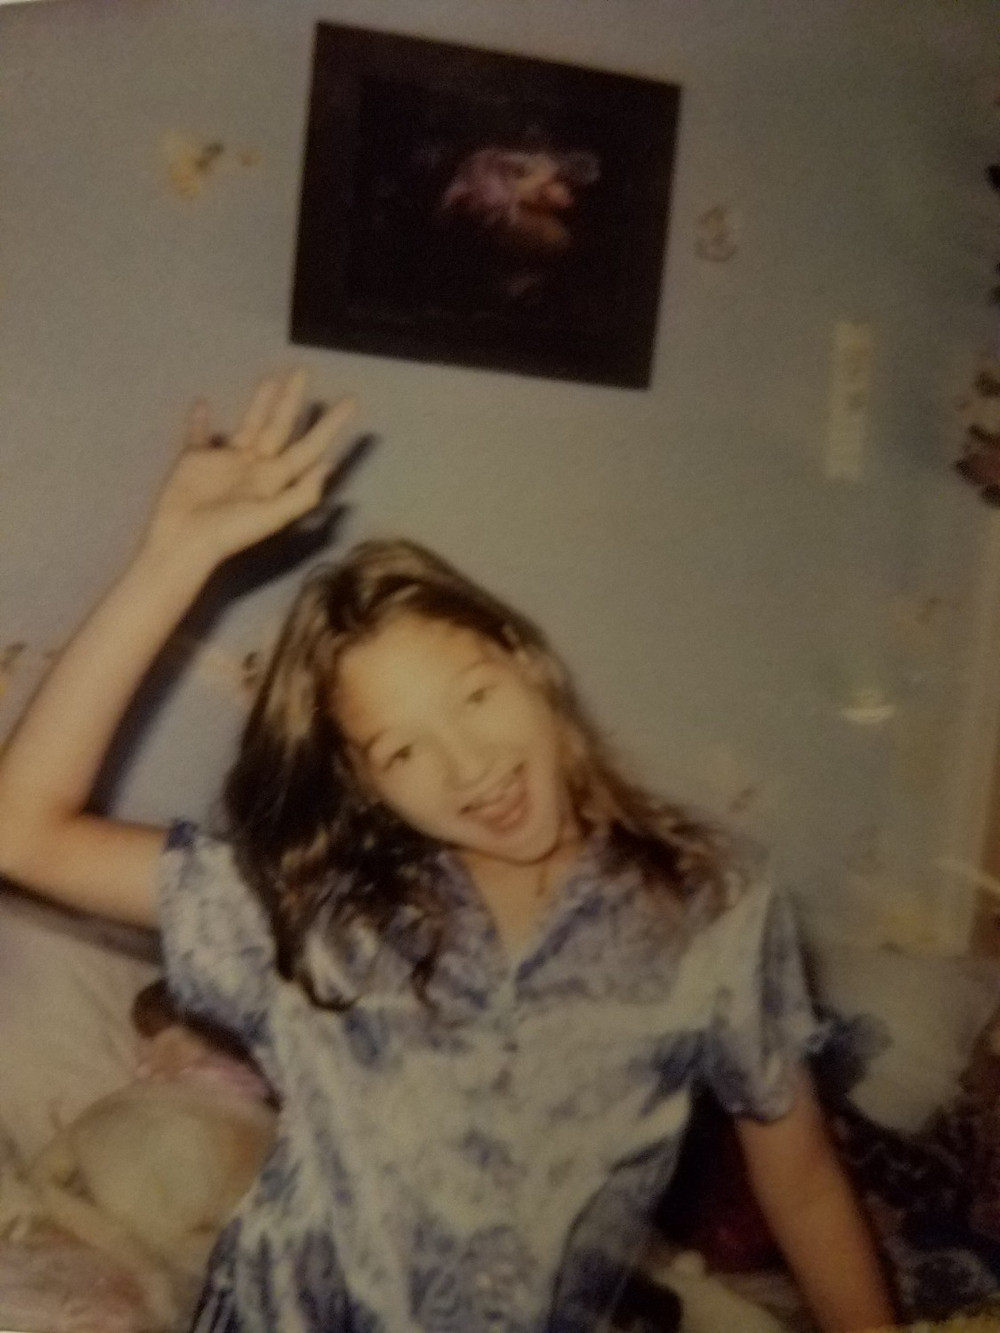 A young teenage girl with lavender pajamas in a room decorated with faries